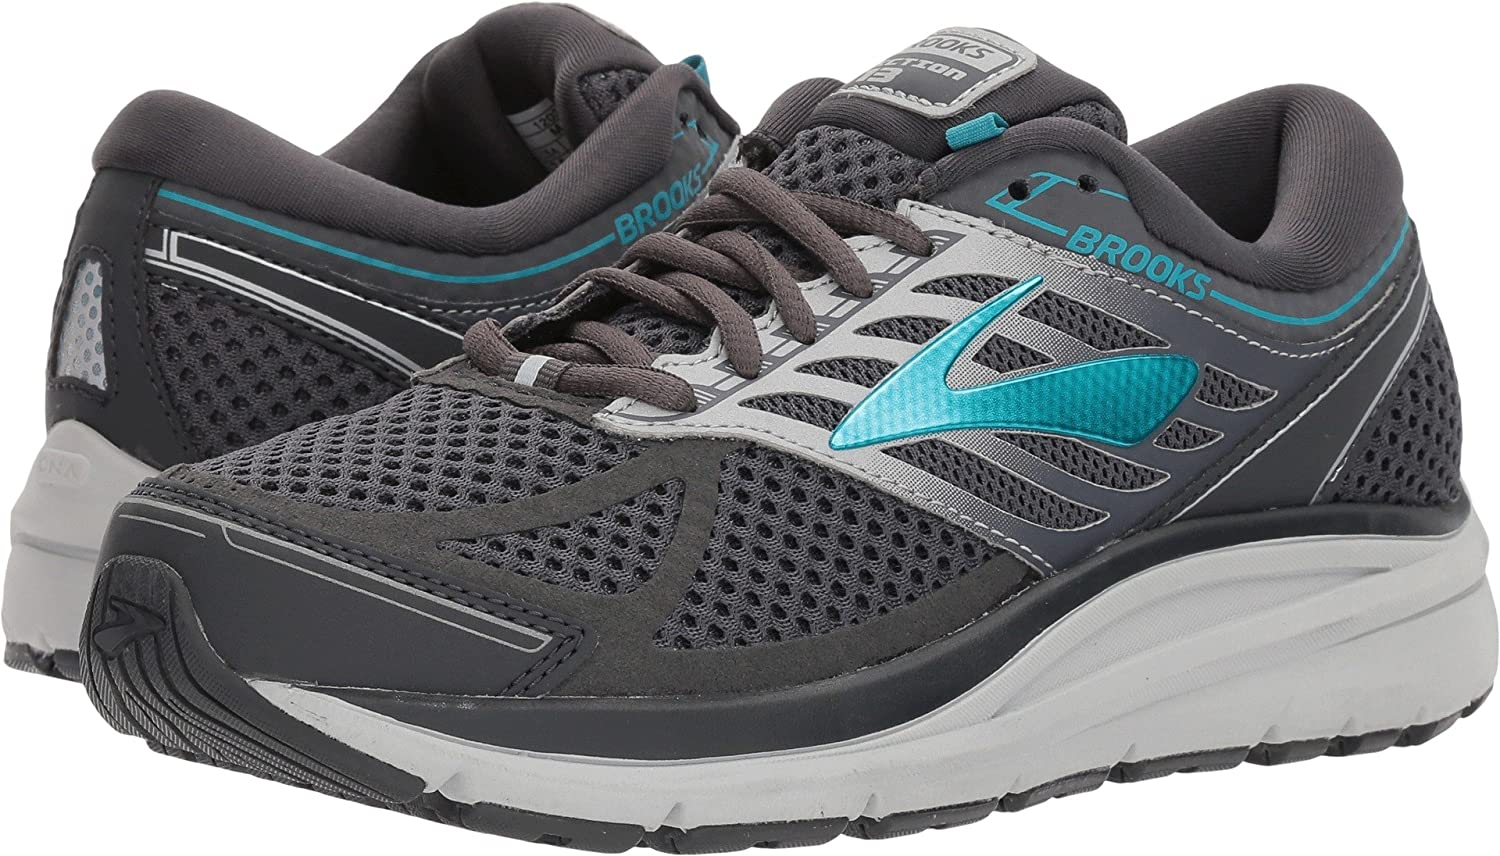 Brooks Womens Addiction 13 B072BPZMM2 7 D US|Ebony/Silver/Pagoda Blue